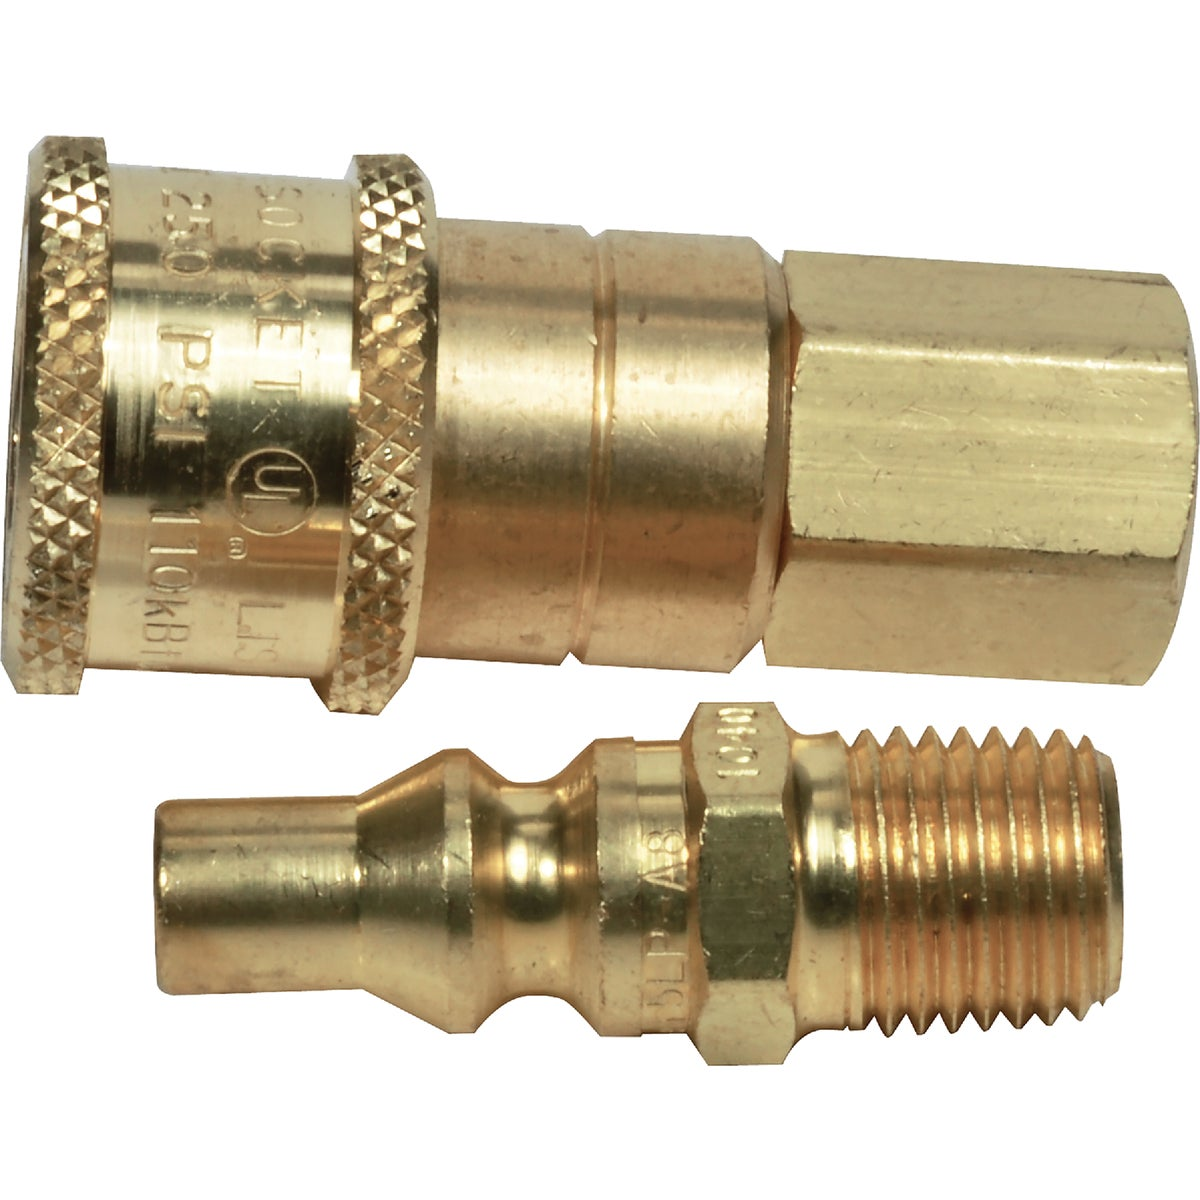 "1/4"" GAS CONNECTOR - F276186 by Mr Heater Corp"